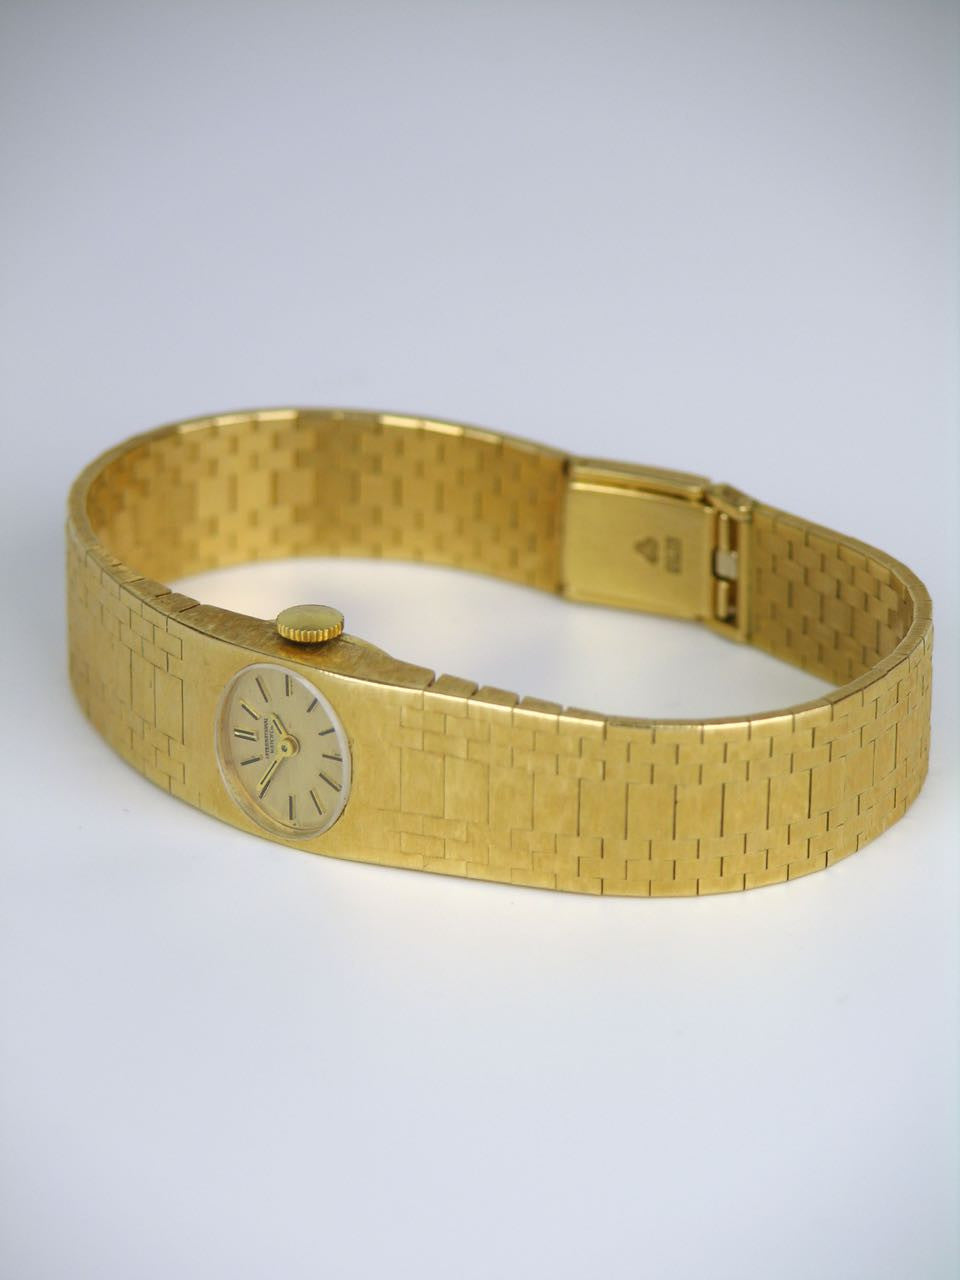 International Watch Company yellow gold dress Wristwatch